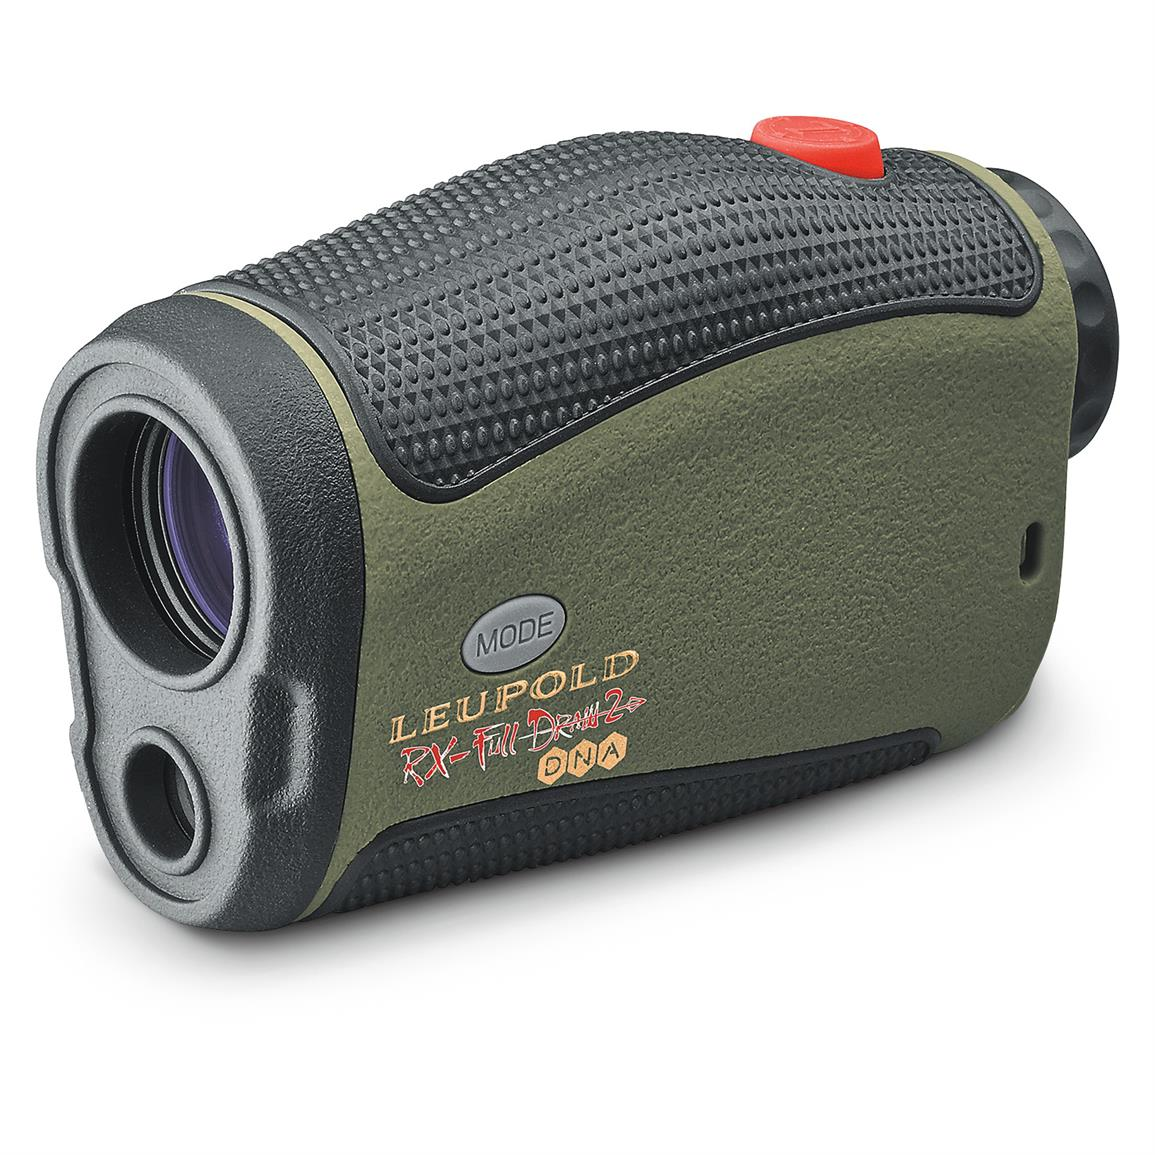 Leupold RX-Fulldraw 2 with DNA Rangefinder